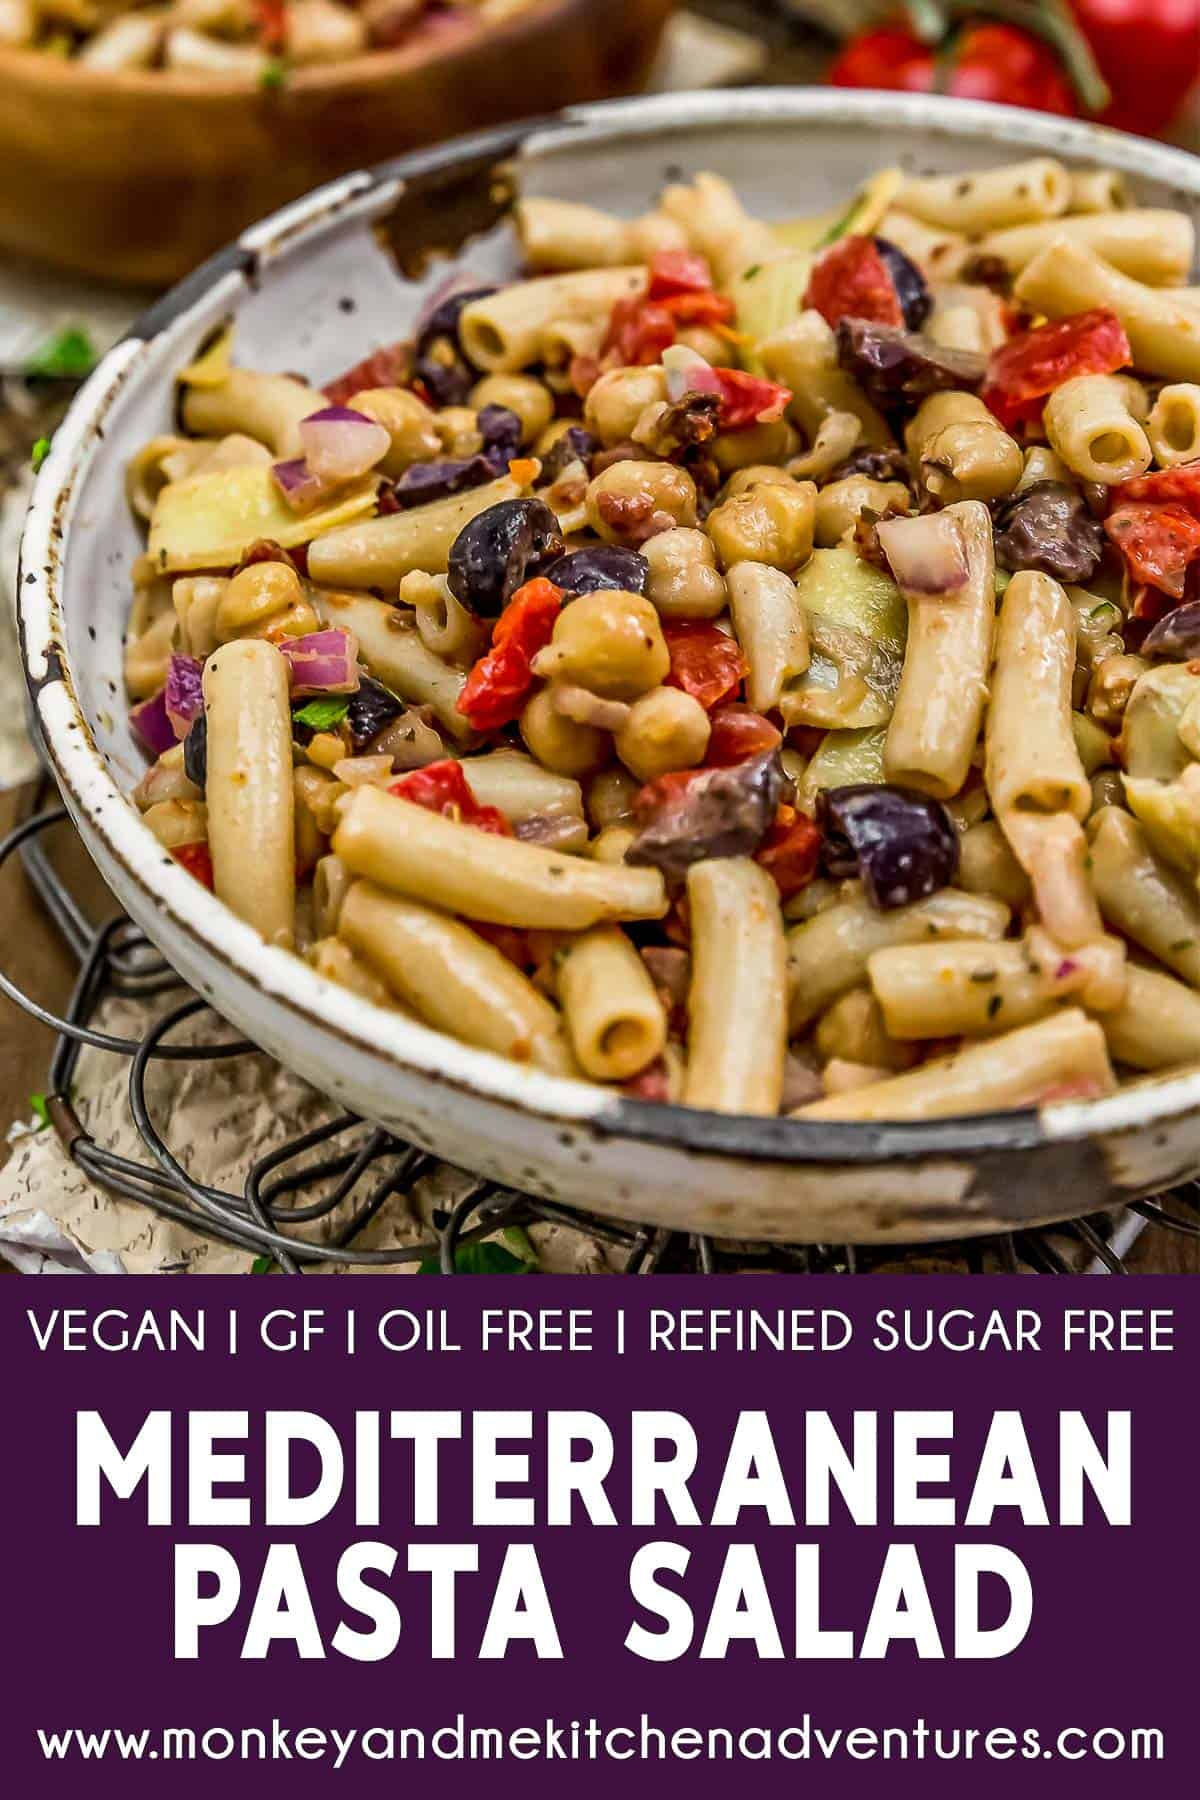 Mediterranean Pasta Salad with text description